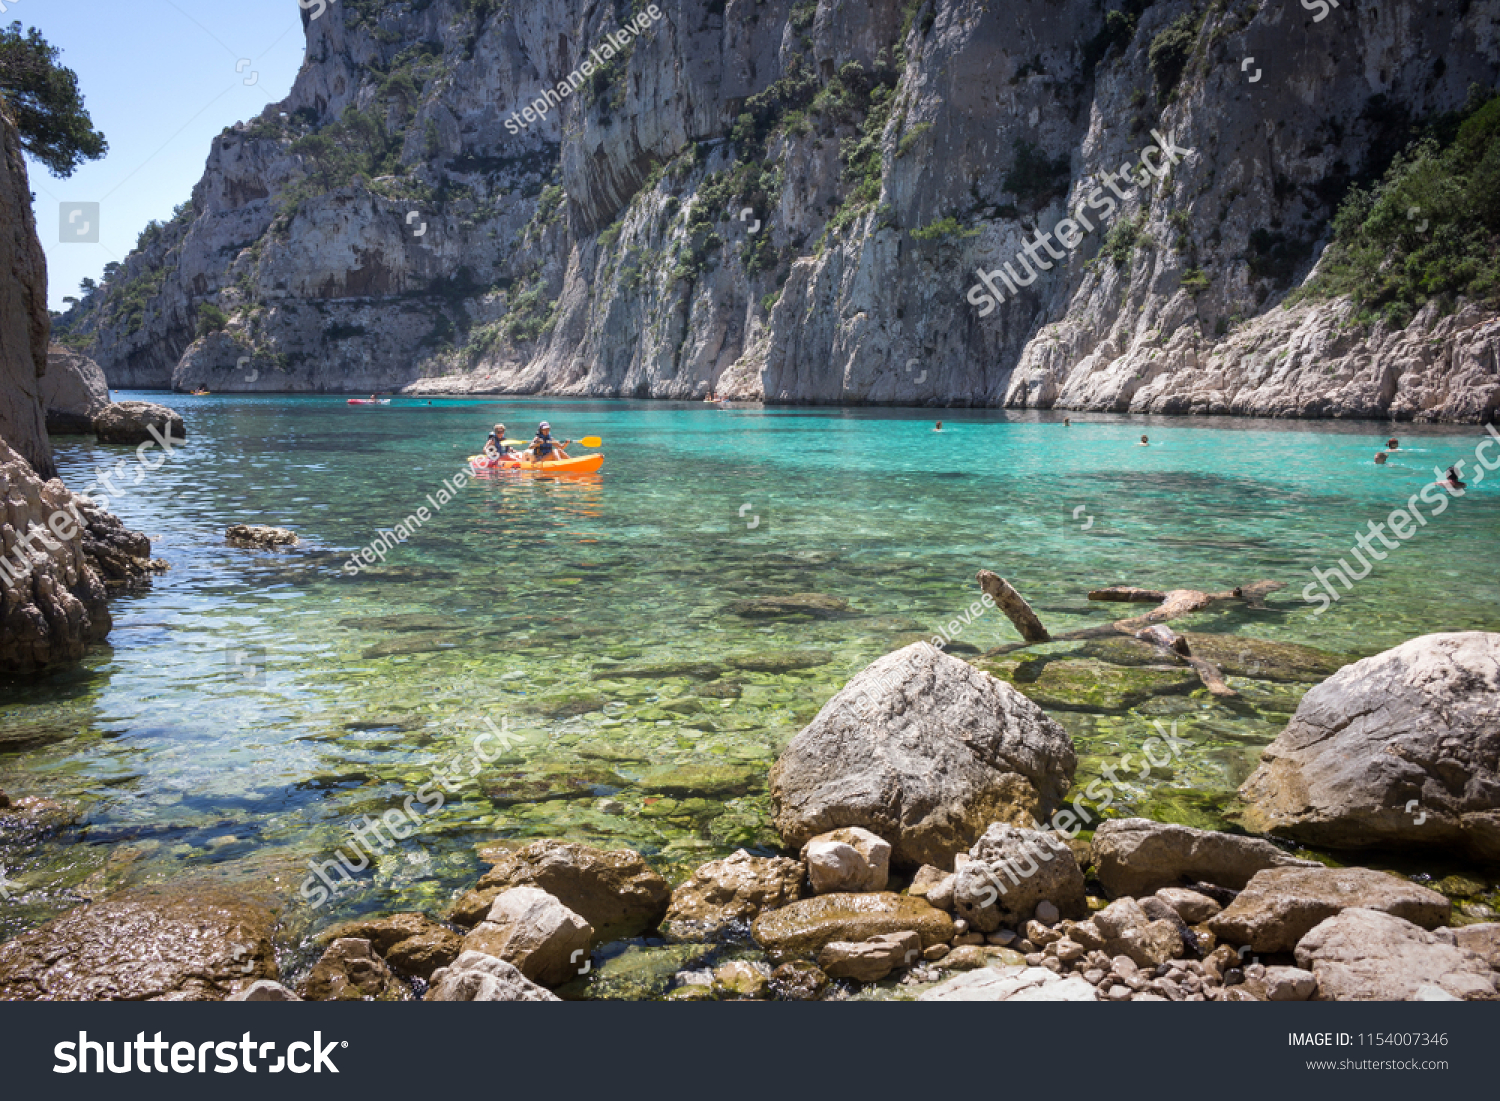 Location Canoe Cassis Marseille Provence France June 16 2017 Stock Photo Edit Now